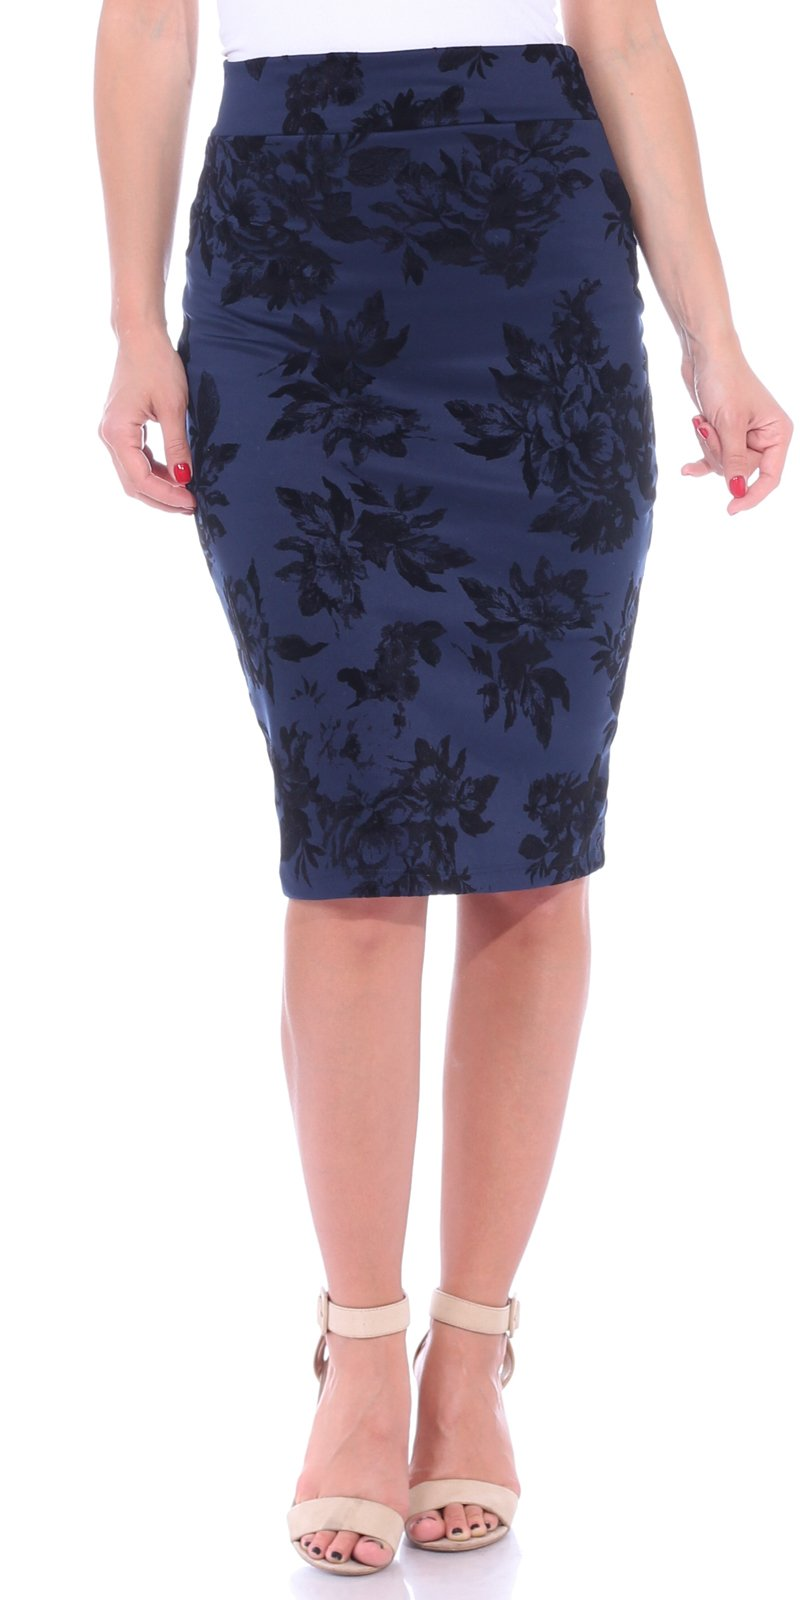 Popana Women's Stretch Pencil Skirt Knee Length High Waist for Work Made in USA X-Large Navy